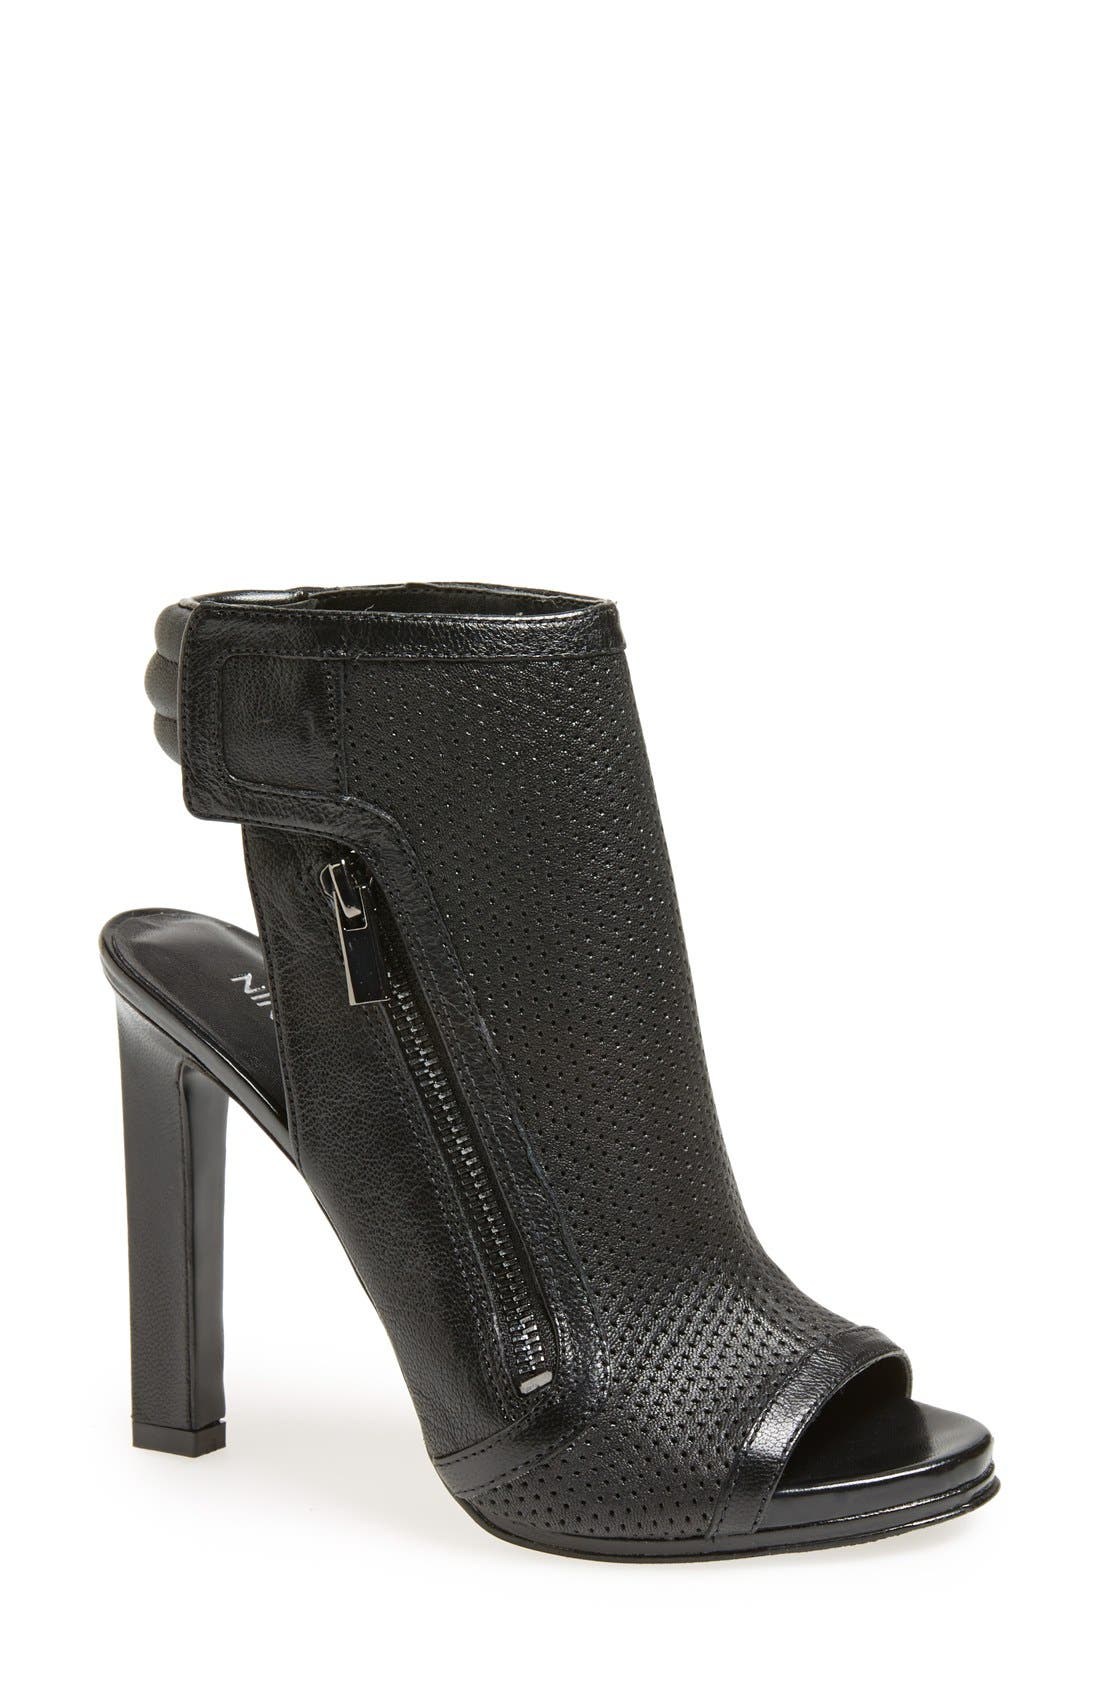 NINE WEST 'Tiptoe' Perforated Bootie, Main, color, 001